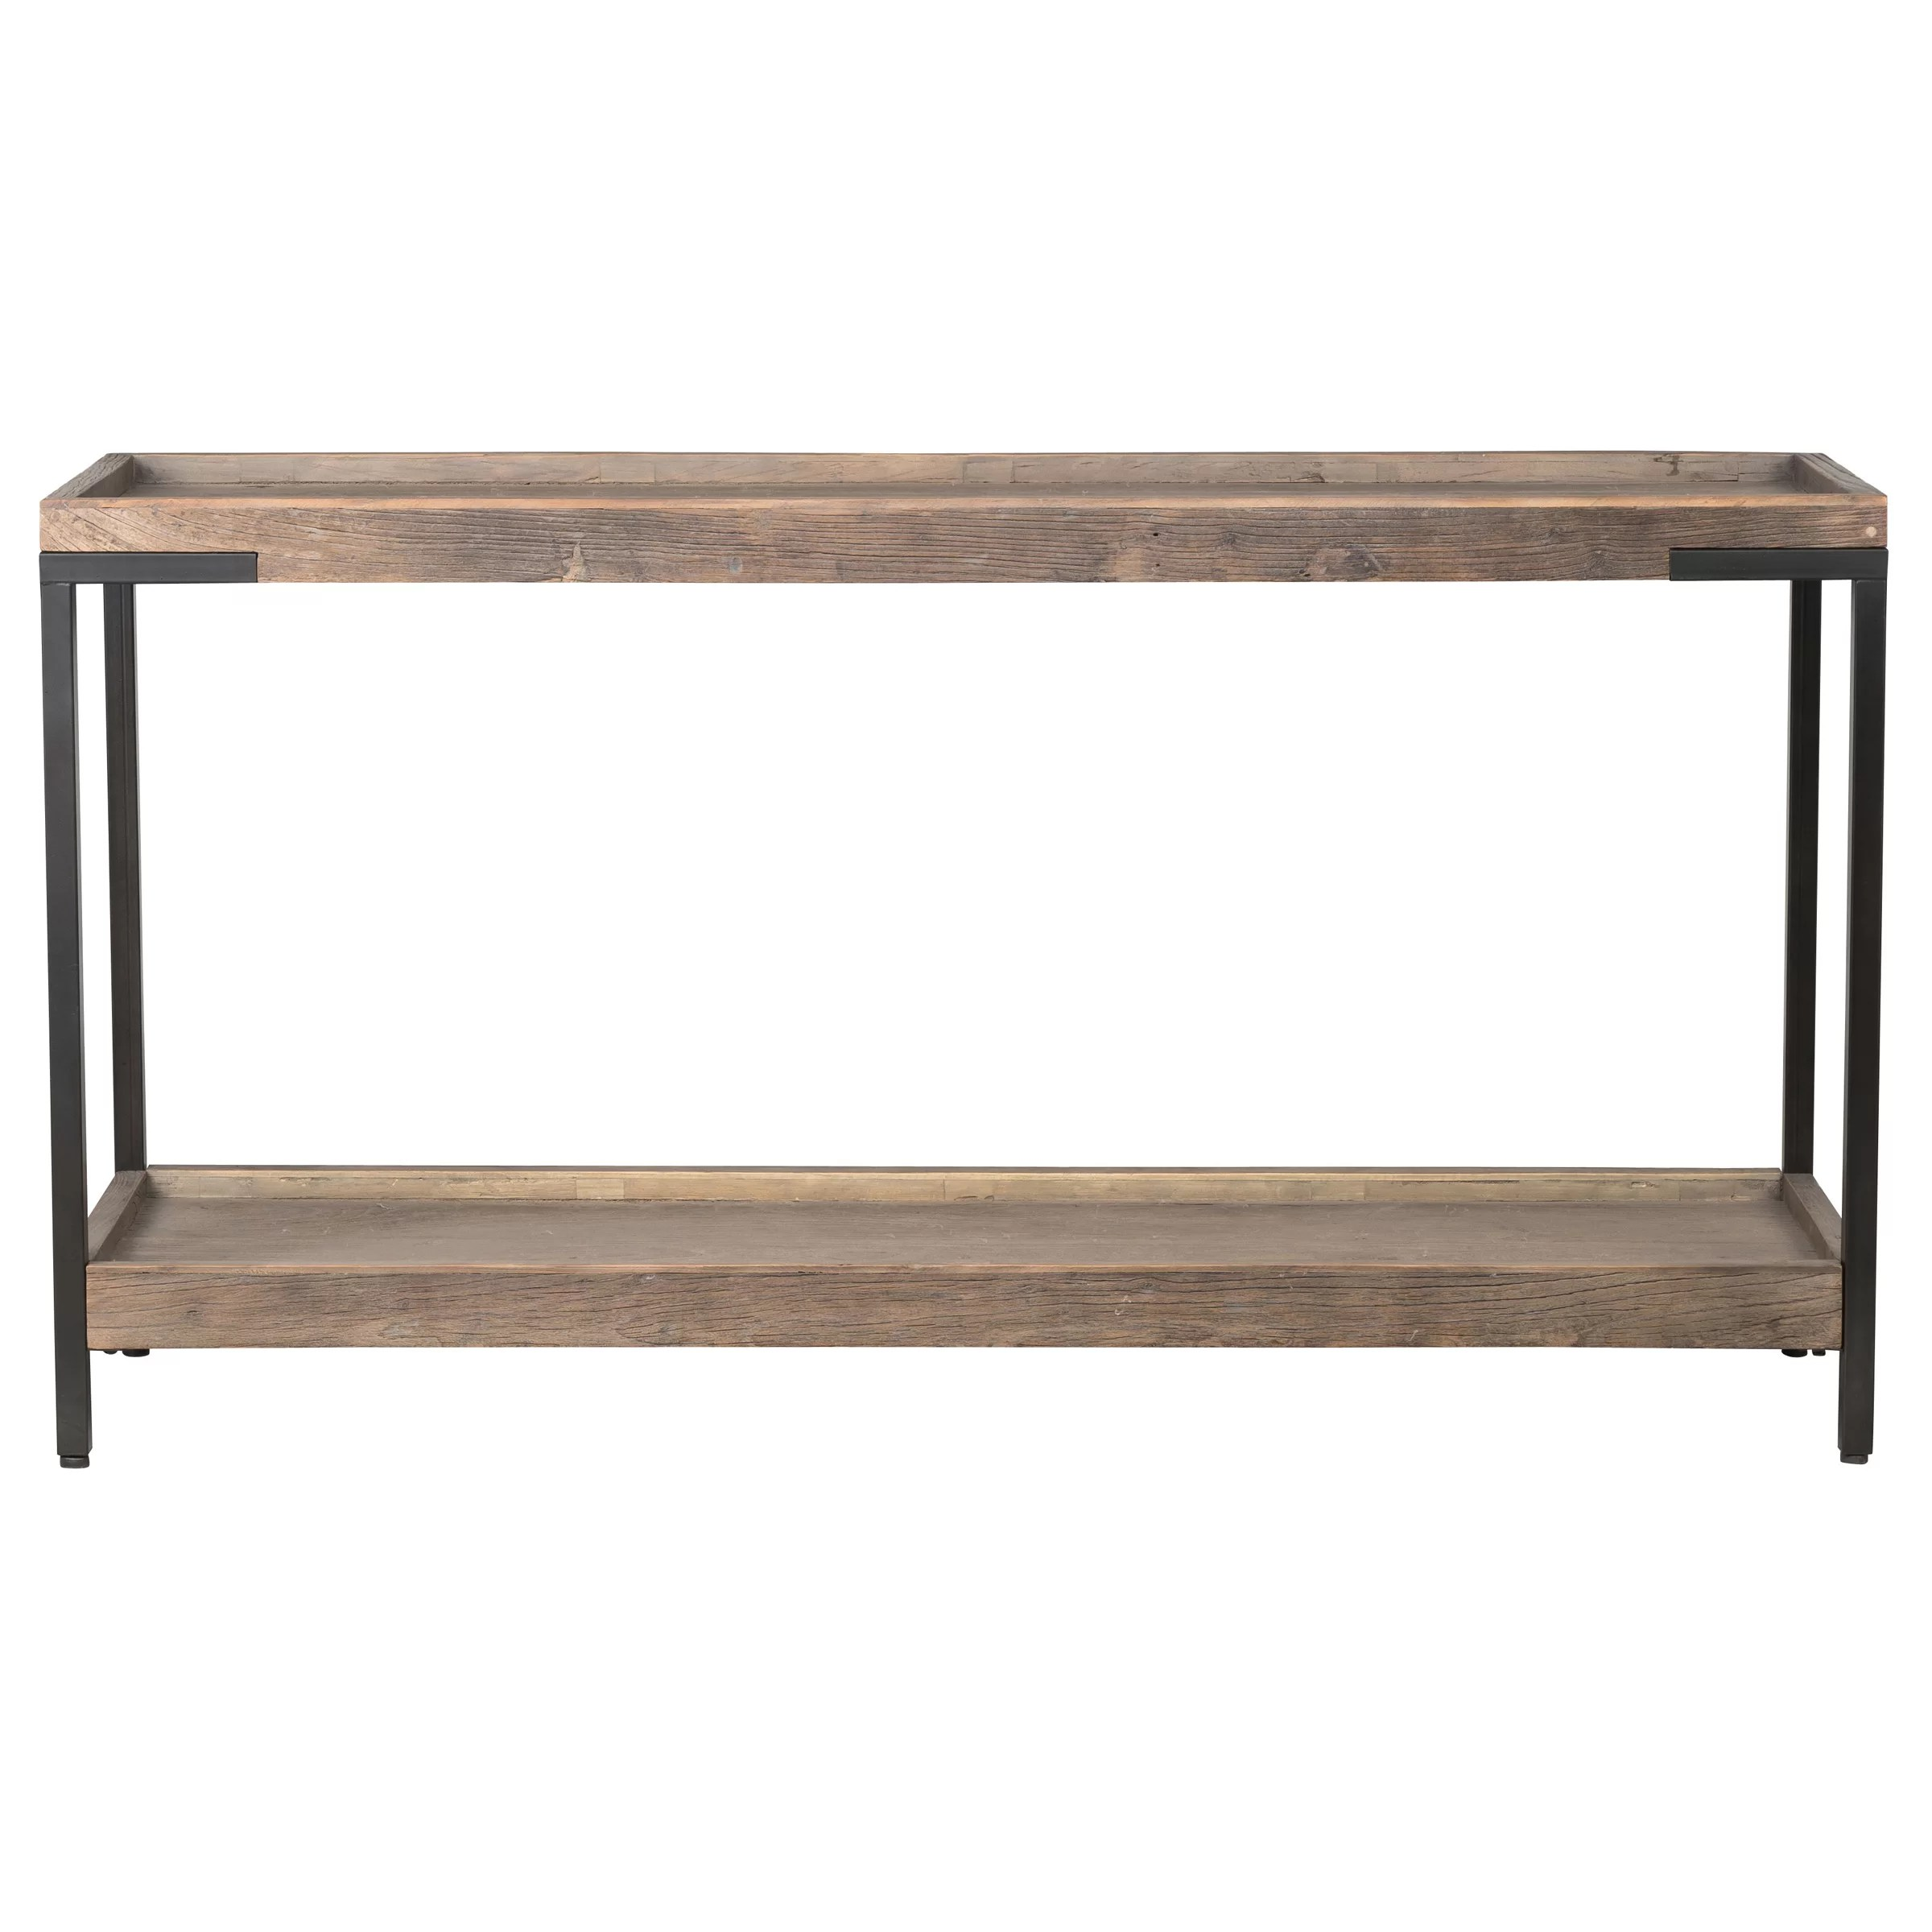 Farmhouse Console Table Laurel Foundry Modern Farmhouse Nena Console Table Wayfair